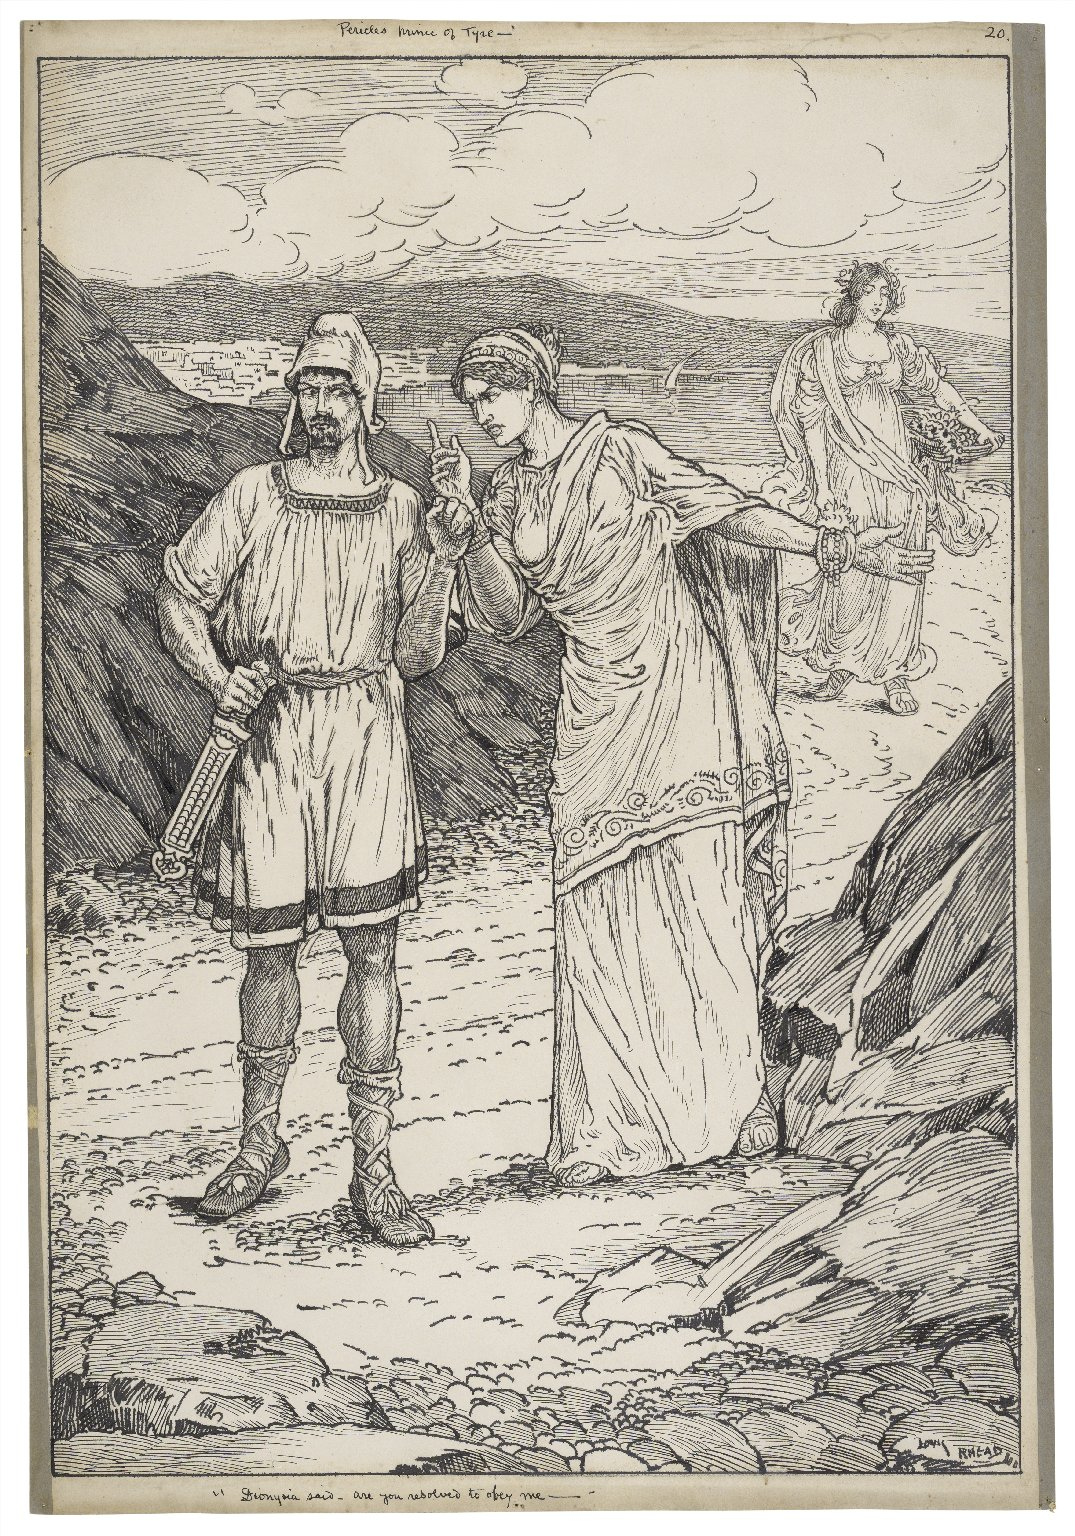 Pericles, Prince of Tyre. Dionysia [i.e. Dionyza] said - are you resolved to obey me [graphic] / Louis Rhead.